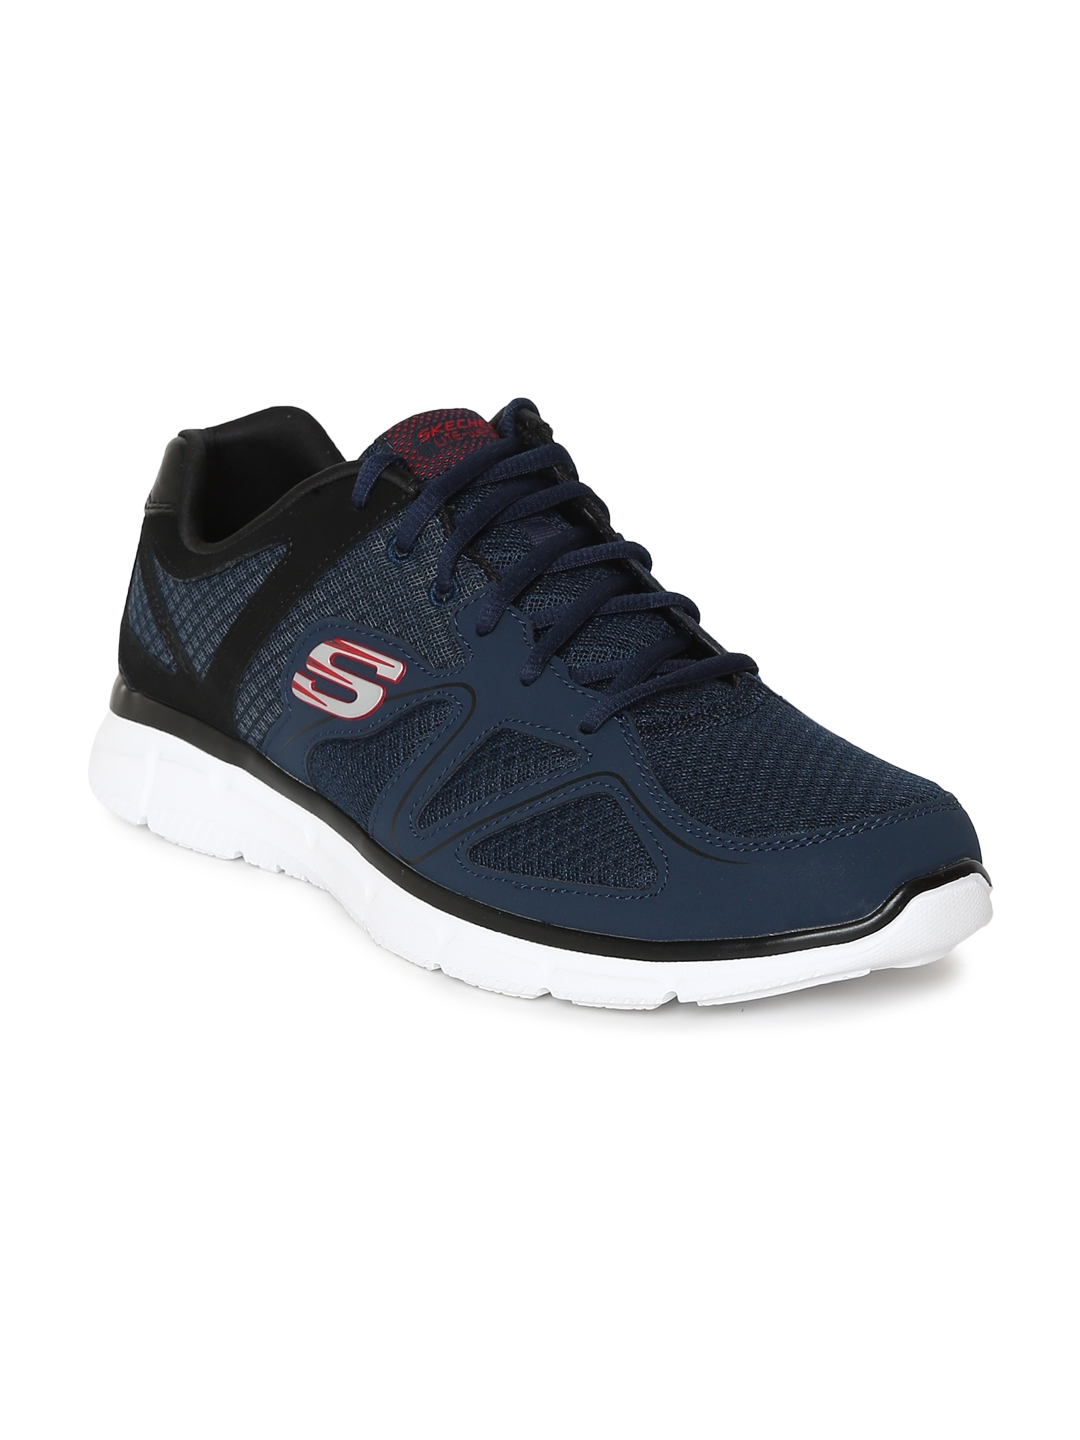 4326e7780937 Buy Skechers Men Navy Blue Verse Flash Point Running Shoes - Sports ...